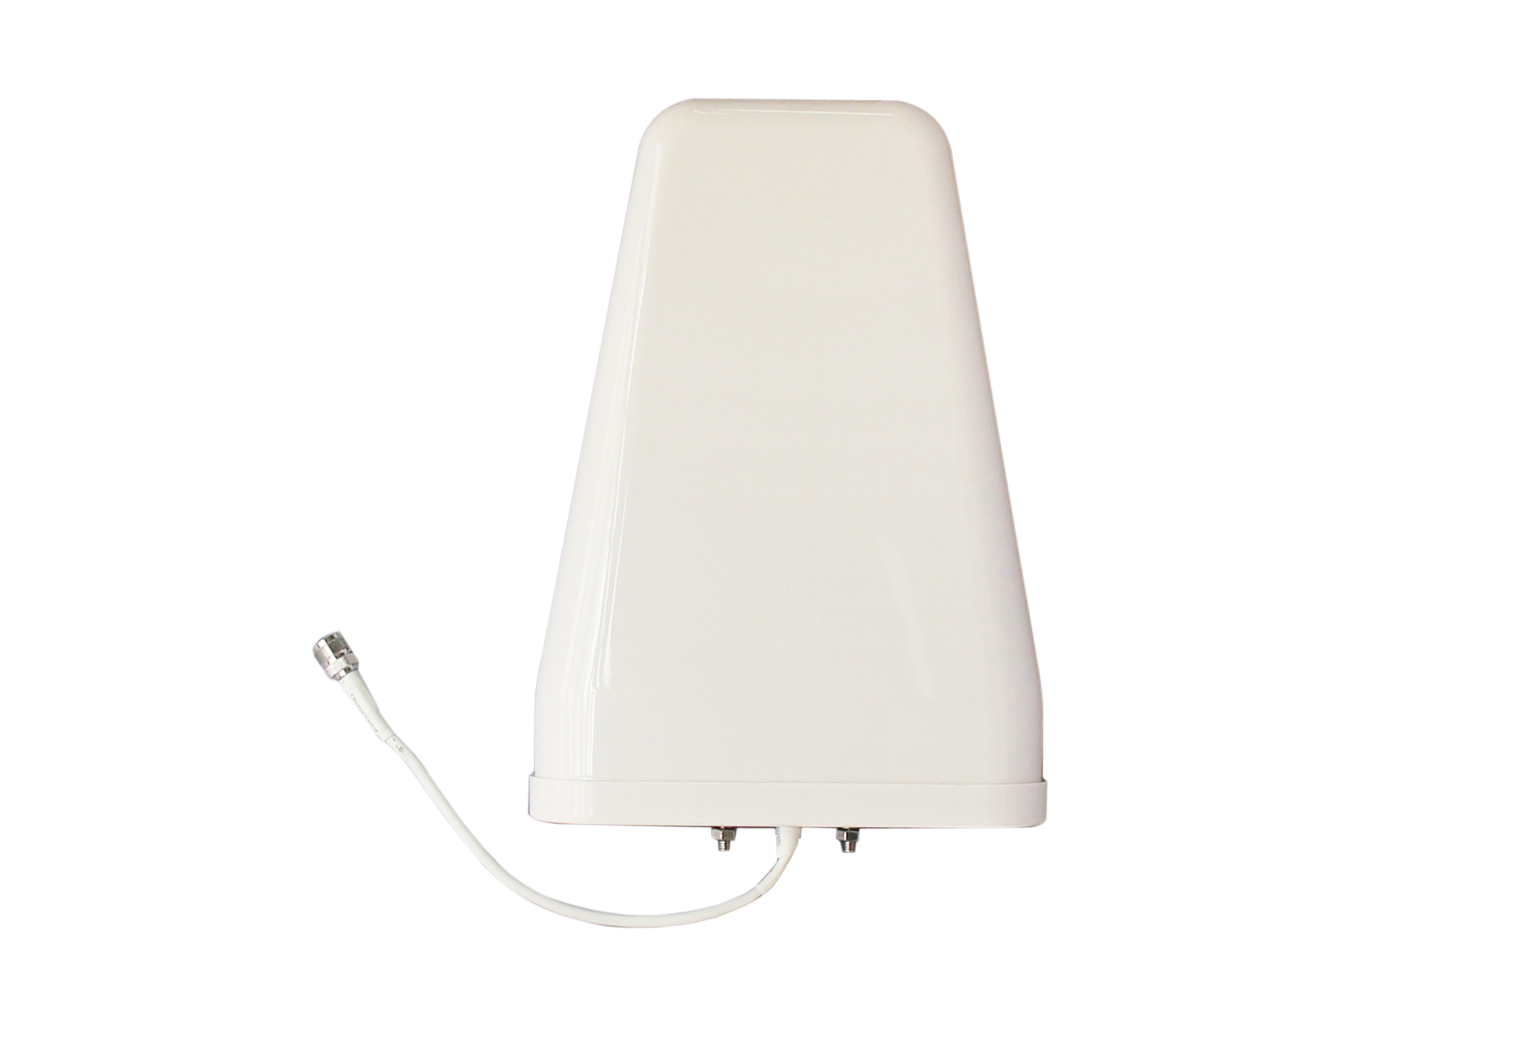 Outdoor Logarithmic Antenna - Mobile Phone External Antenna